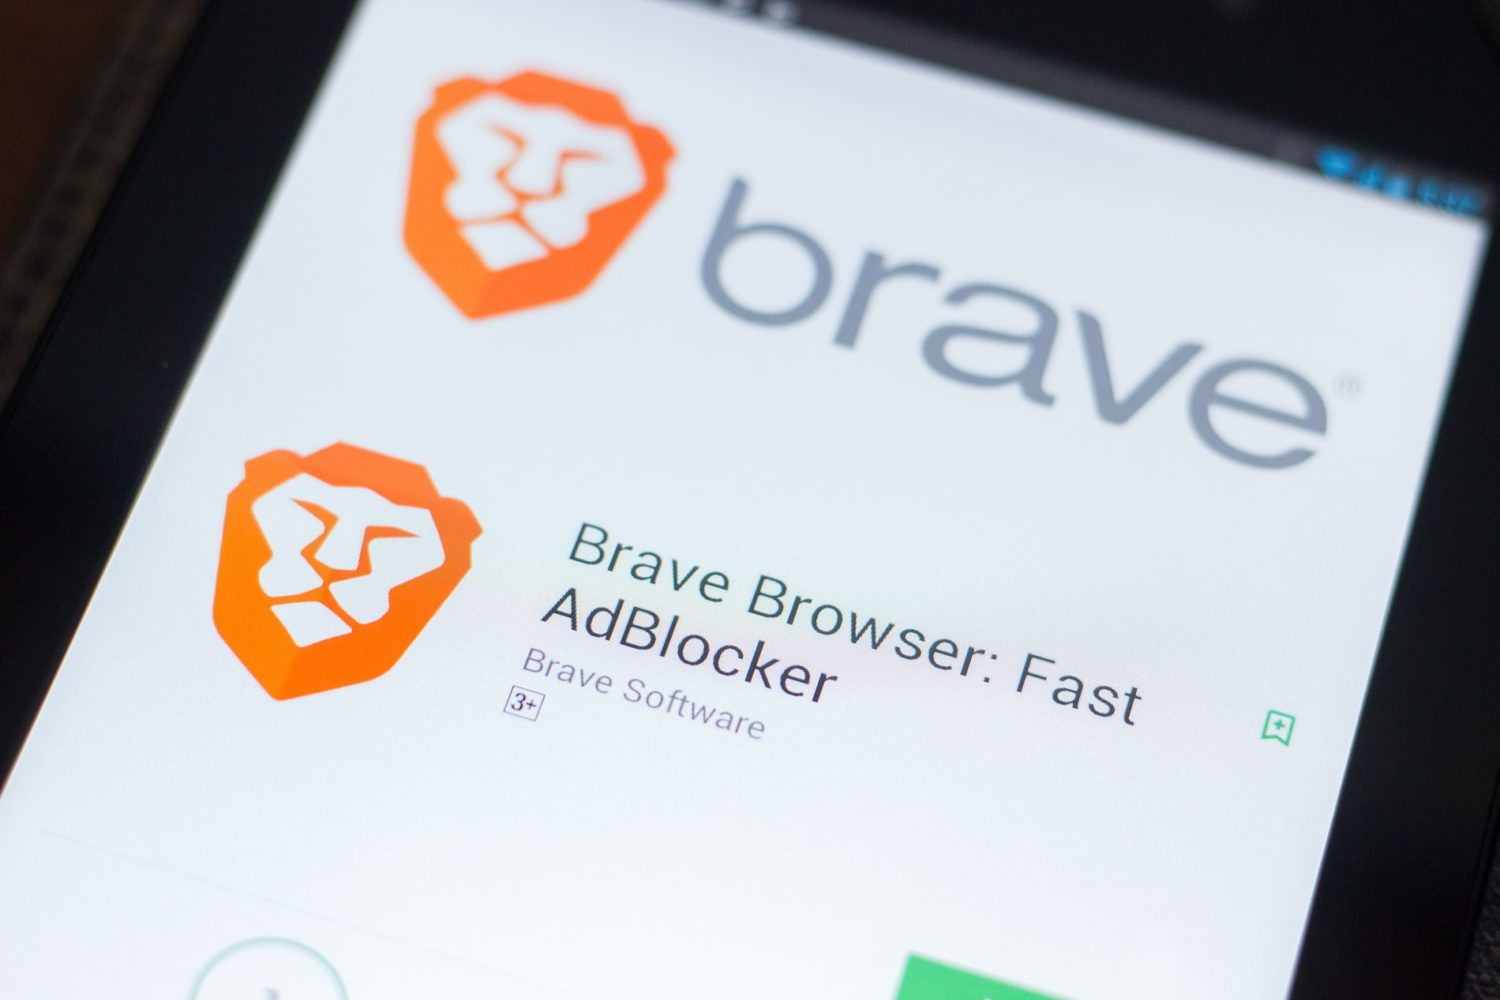 Brave browser's Swag Store now sells Non-Fungible Tokens